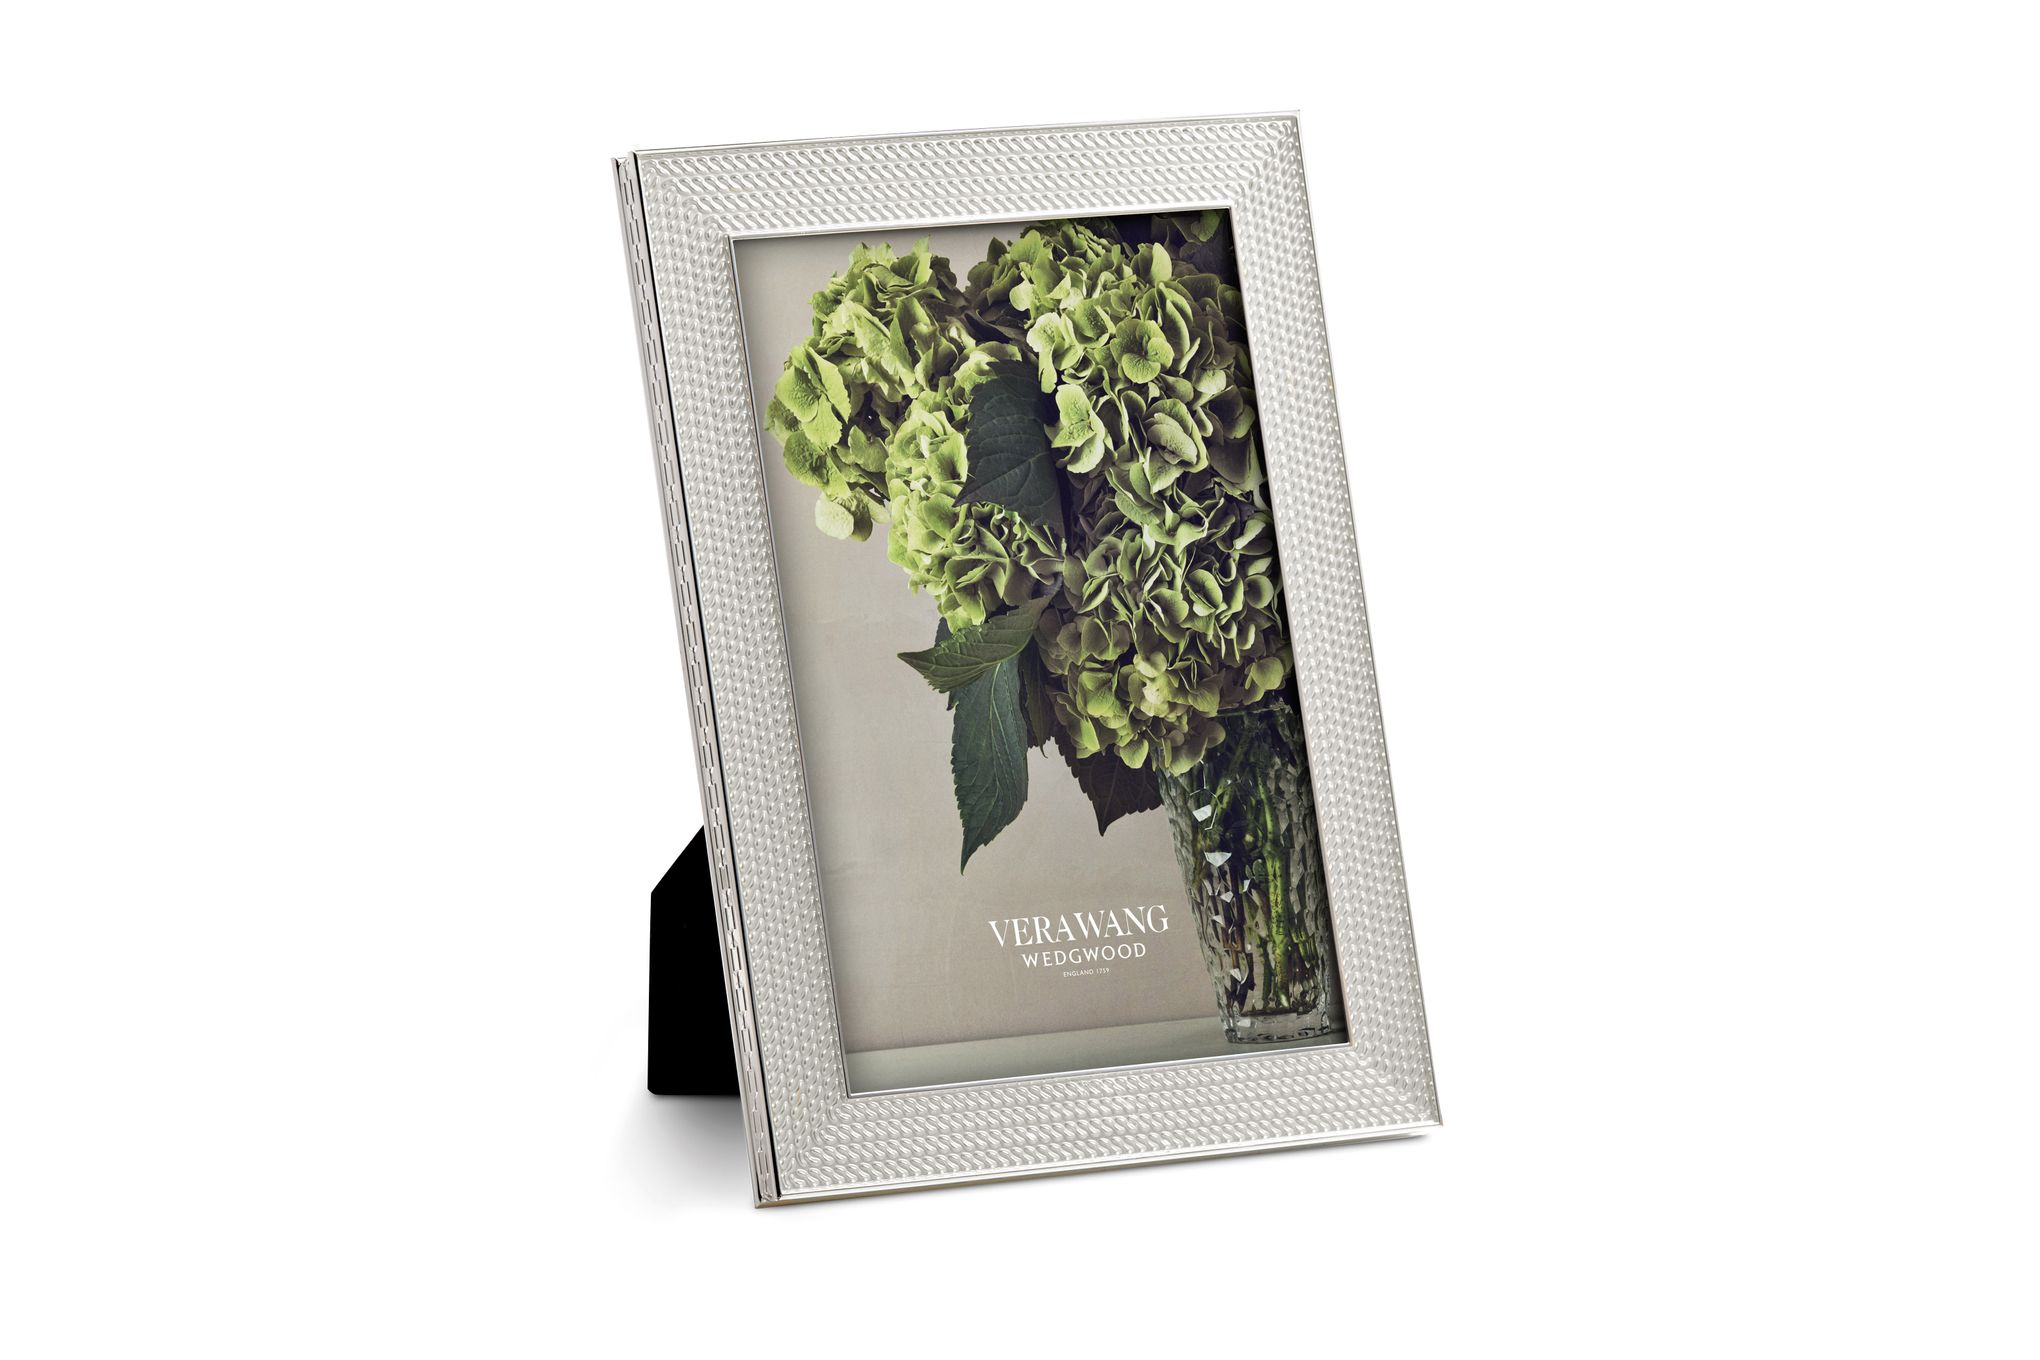 """Vera Wang for Wedgwood With Love Nouveau Photo Frame Silver 4 x 6"""" thumb 1"""